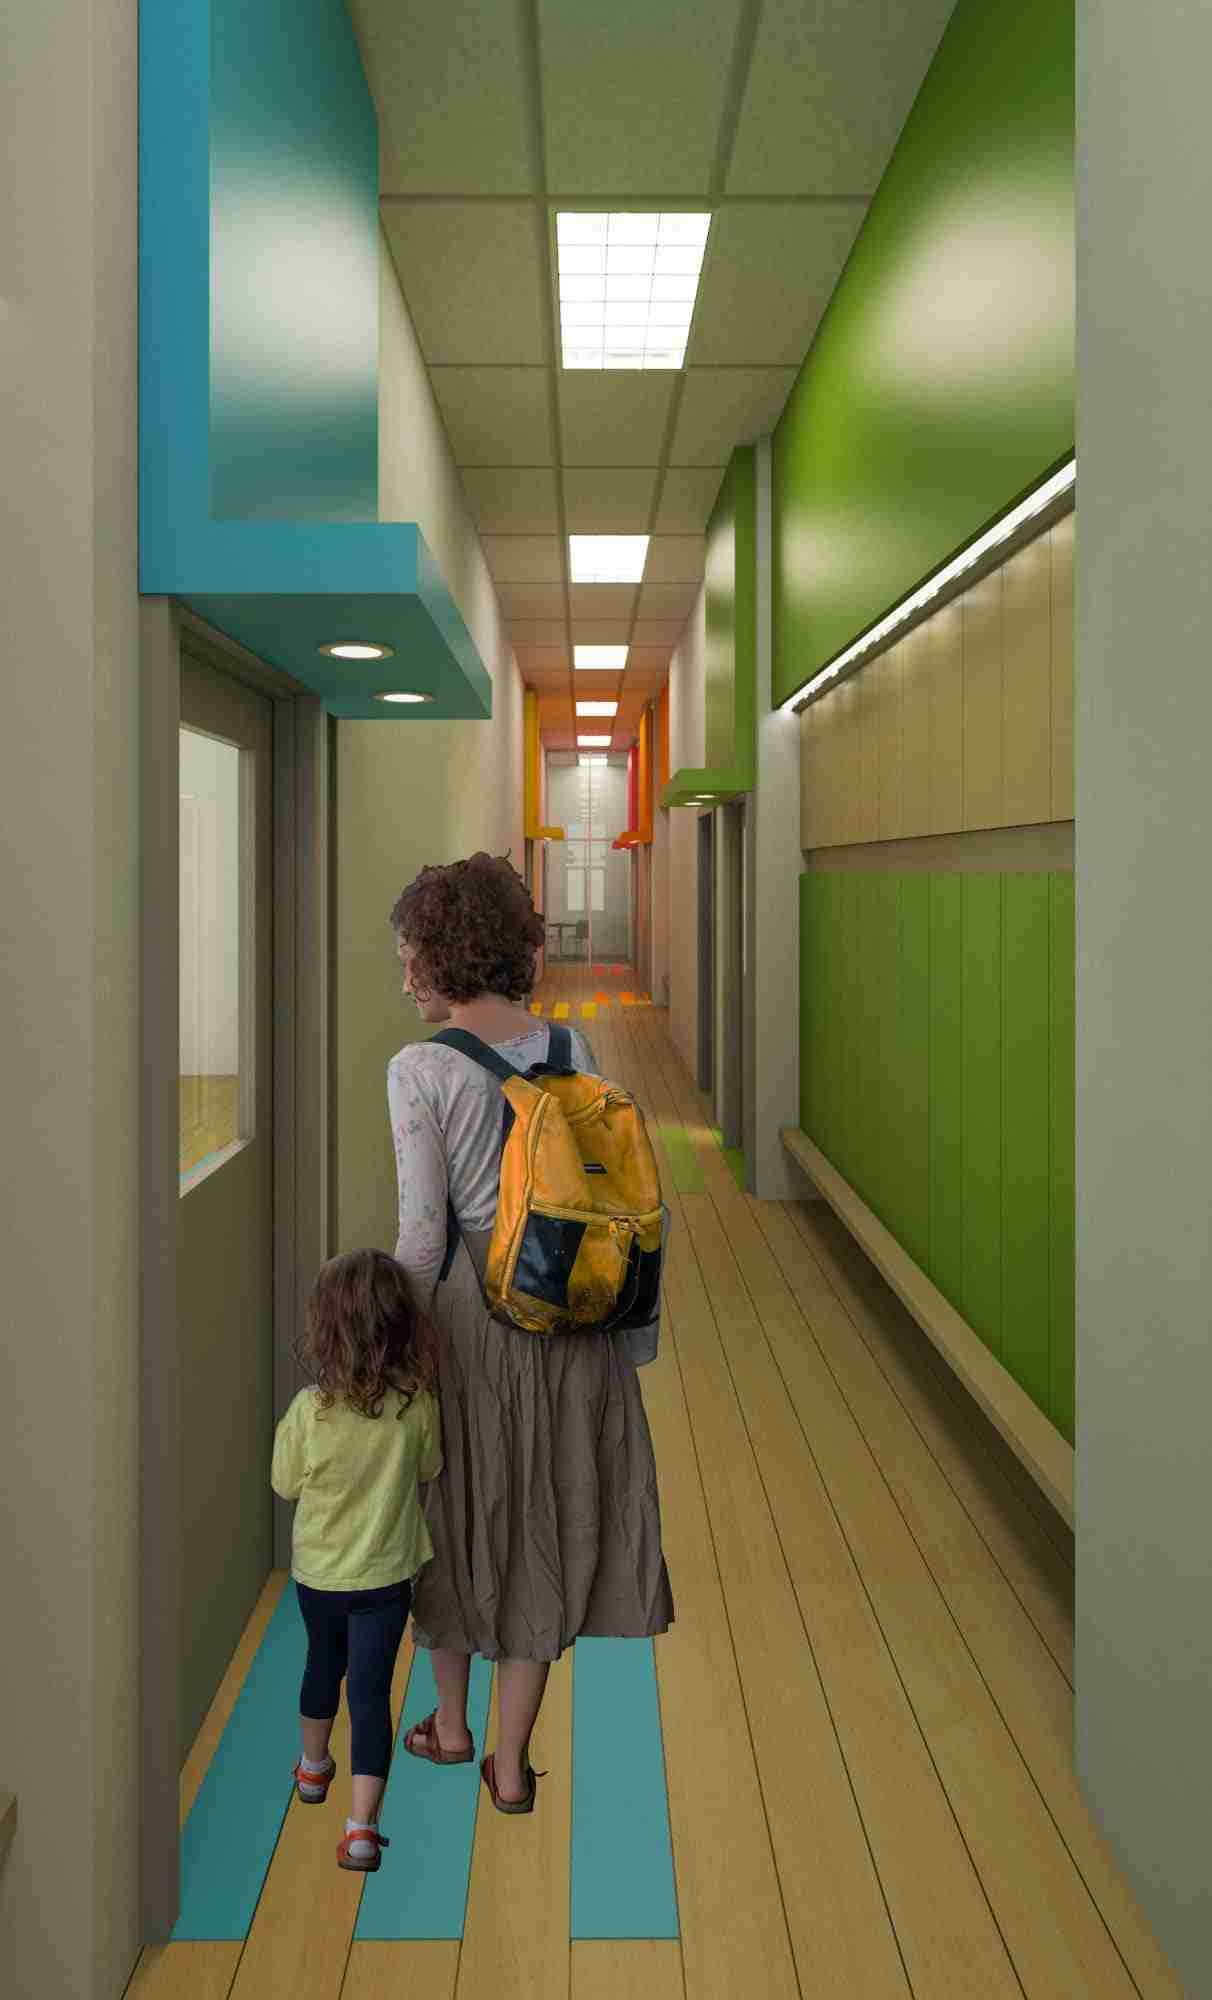 View of corridor showing mother and child